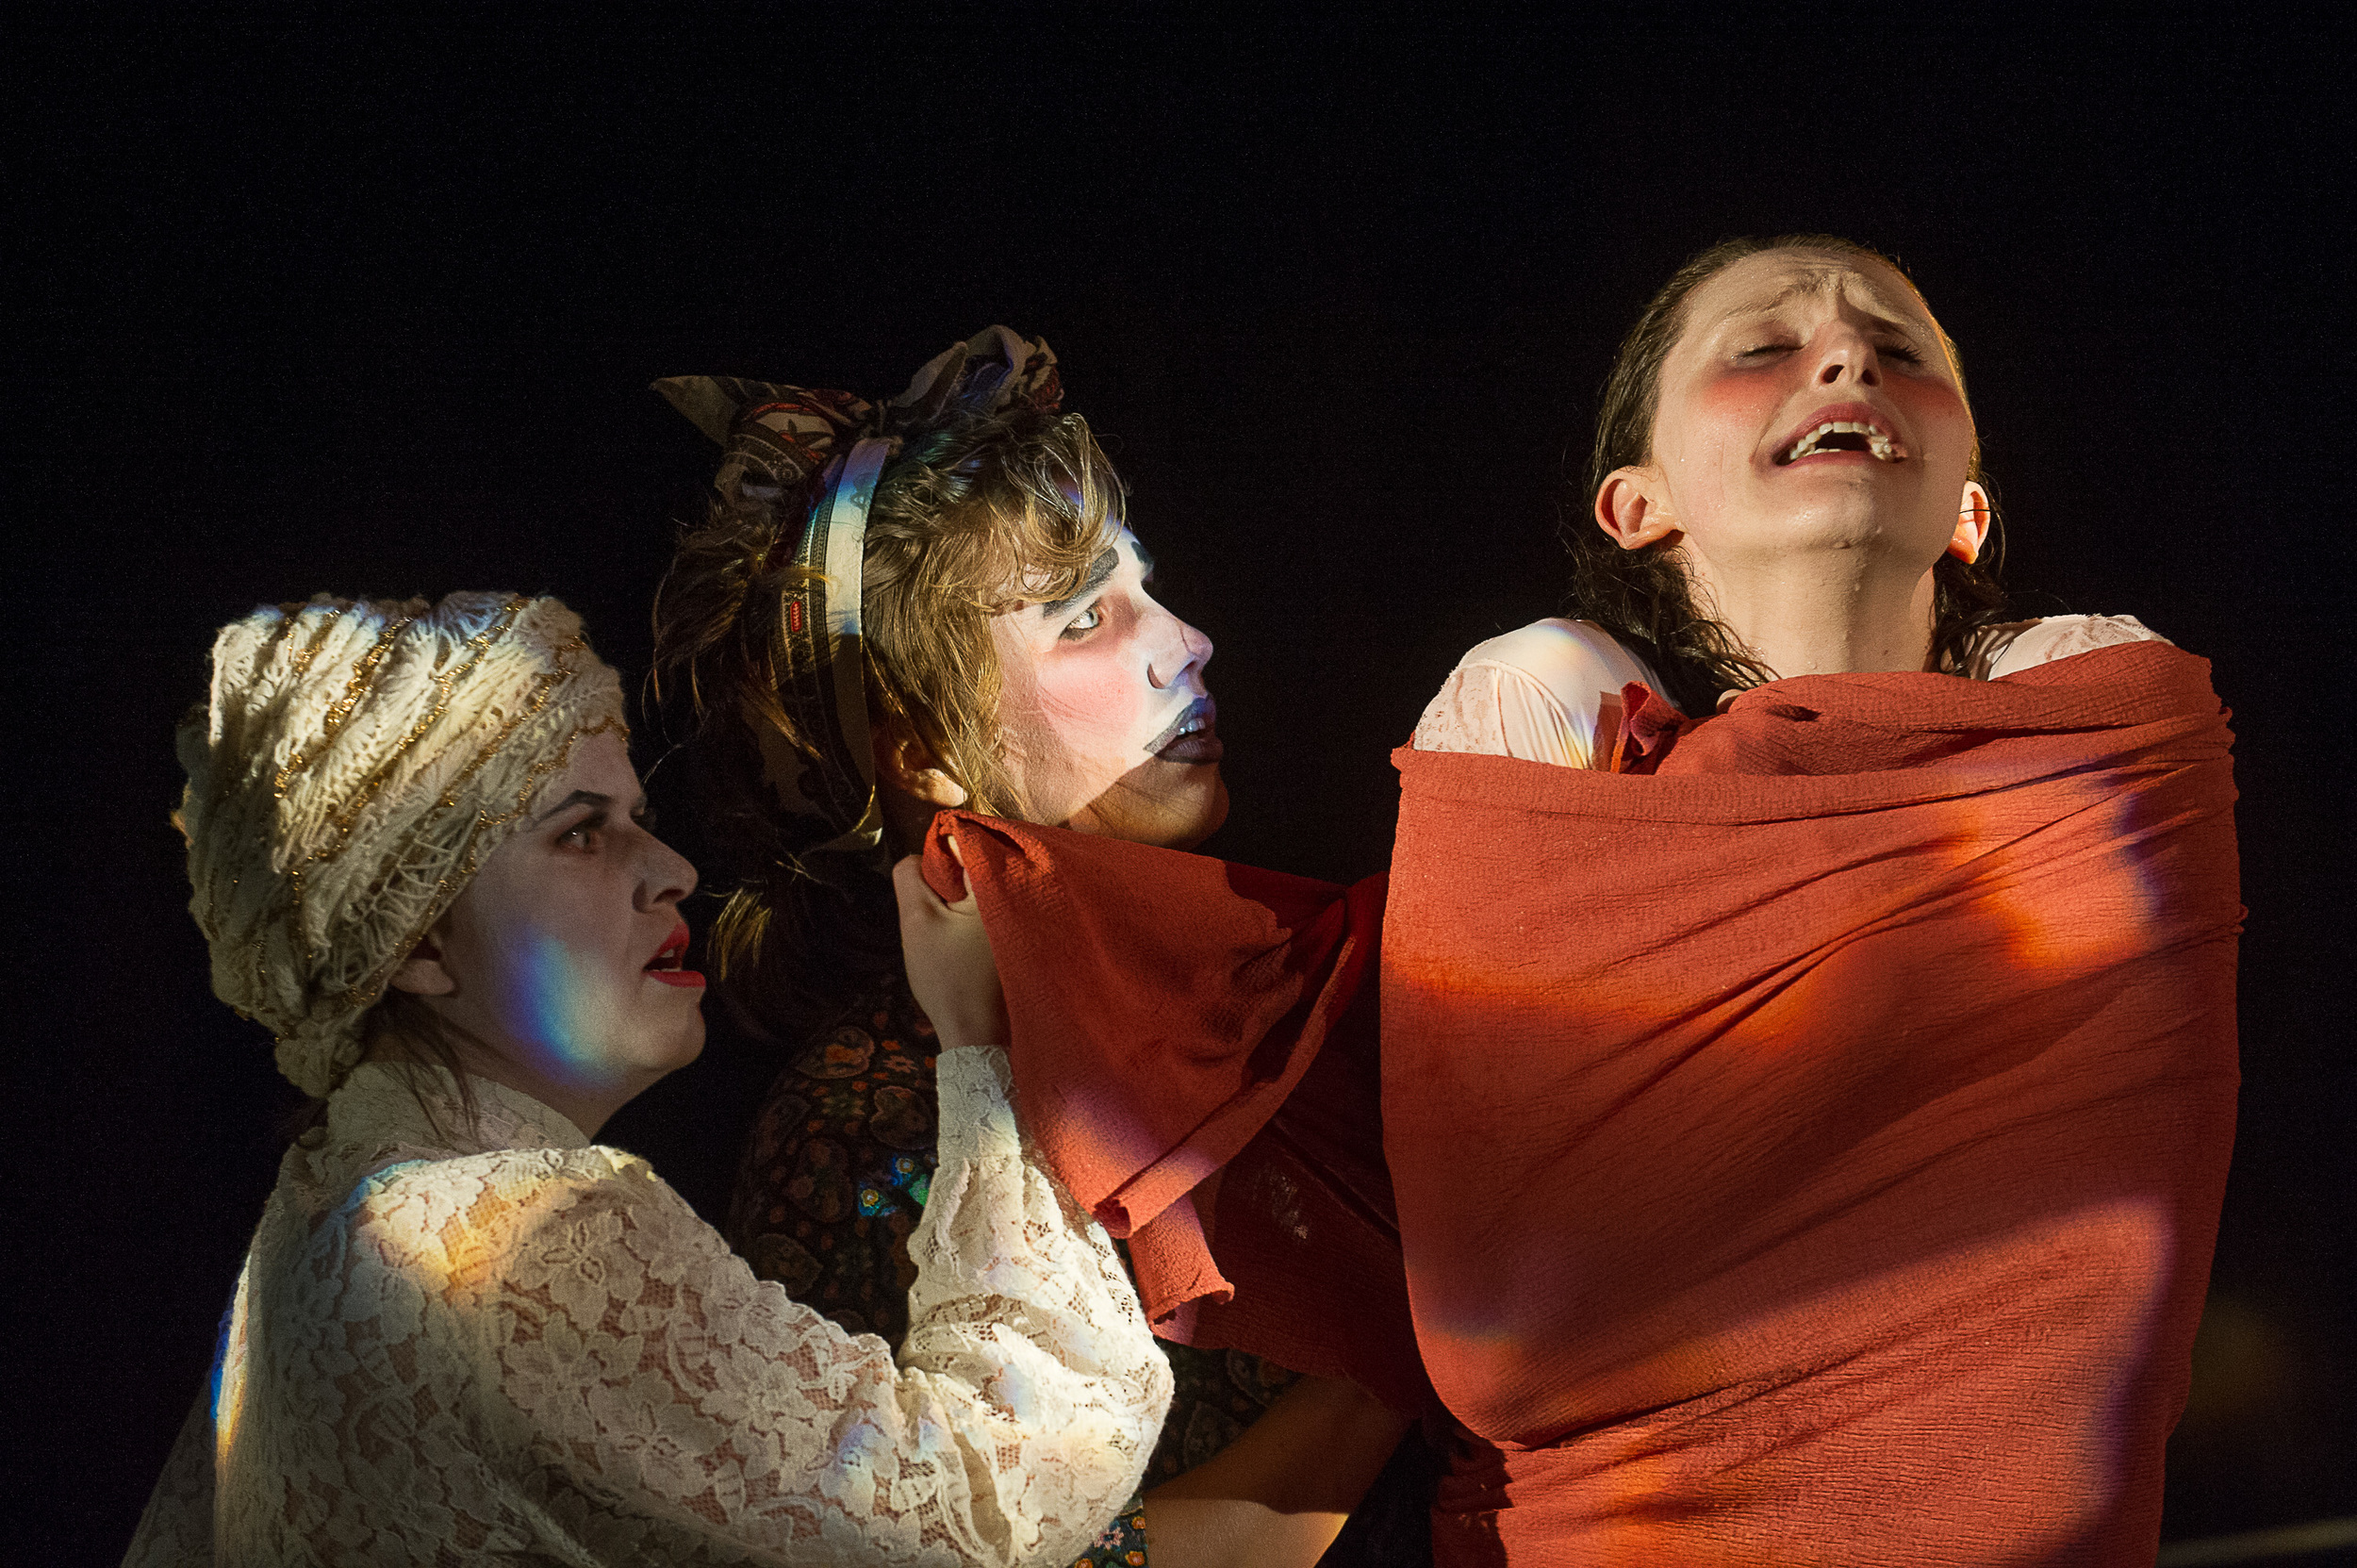 Photo by C. Duggan, Ruxy as Miranda (R)